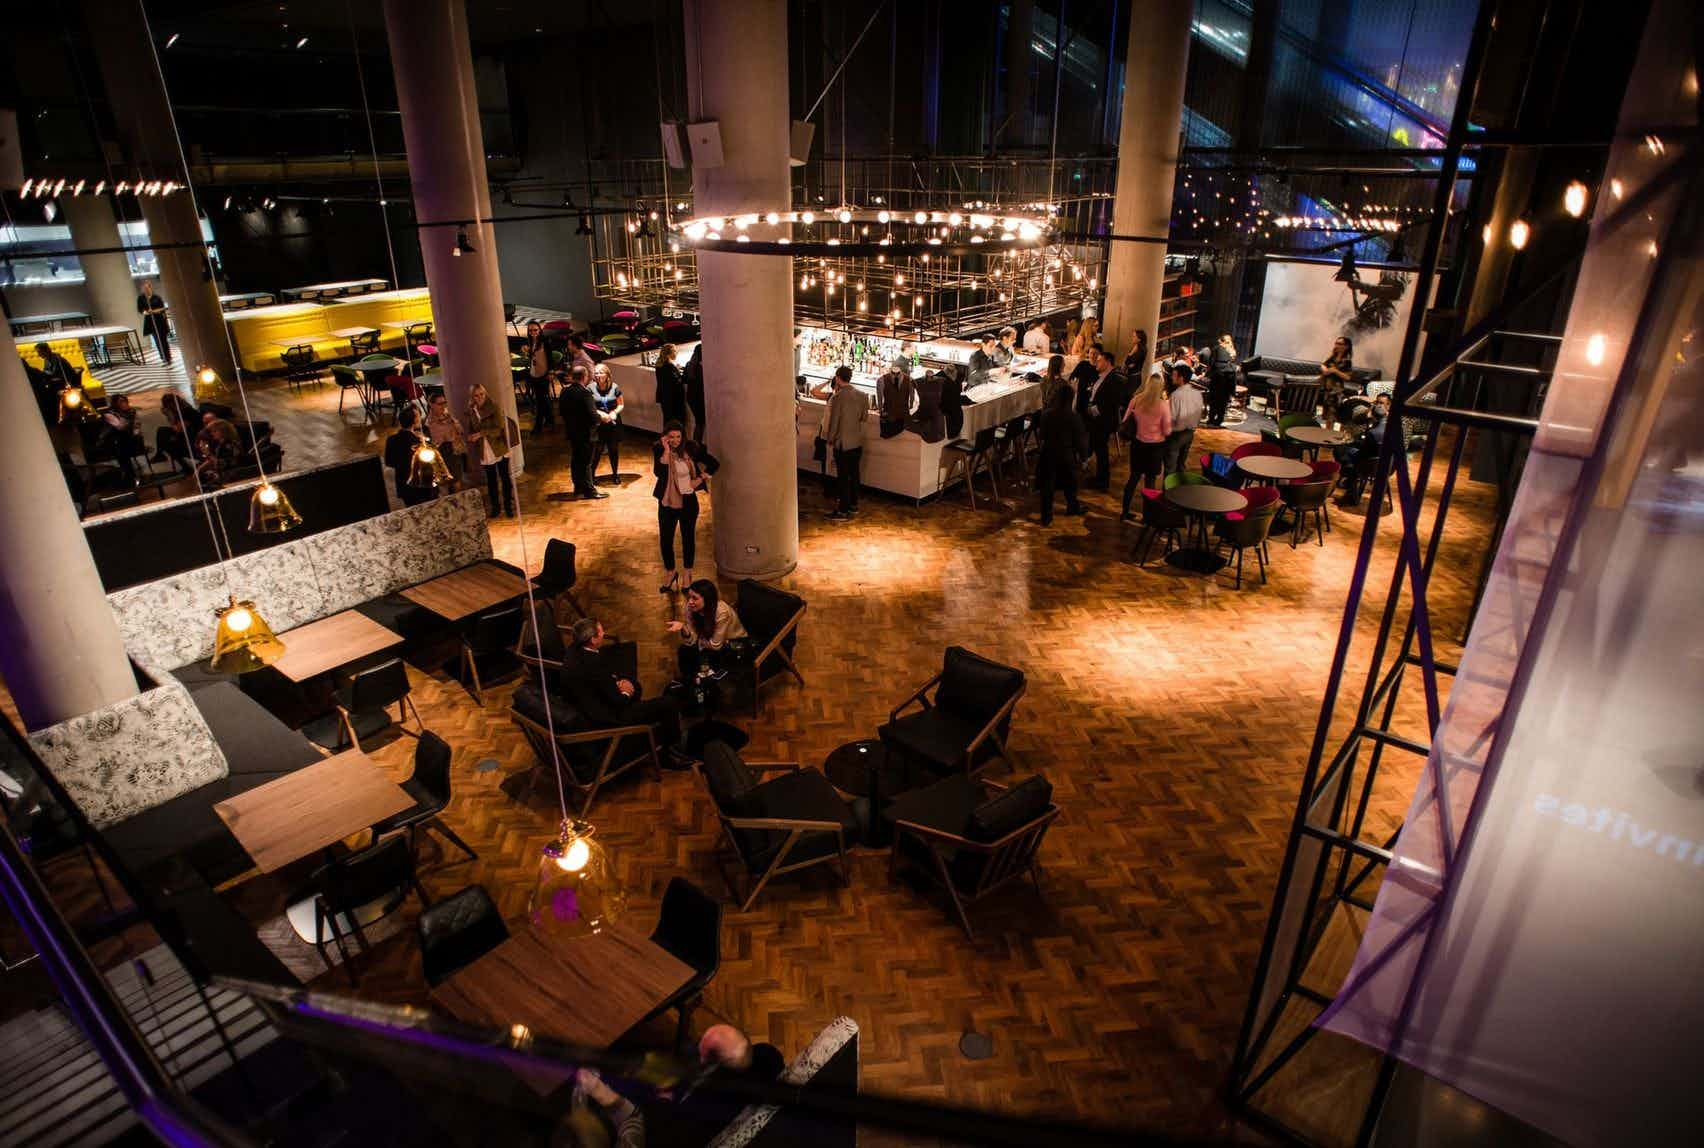 The American Express Lounge, The O2